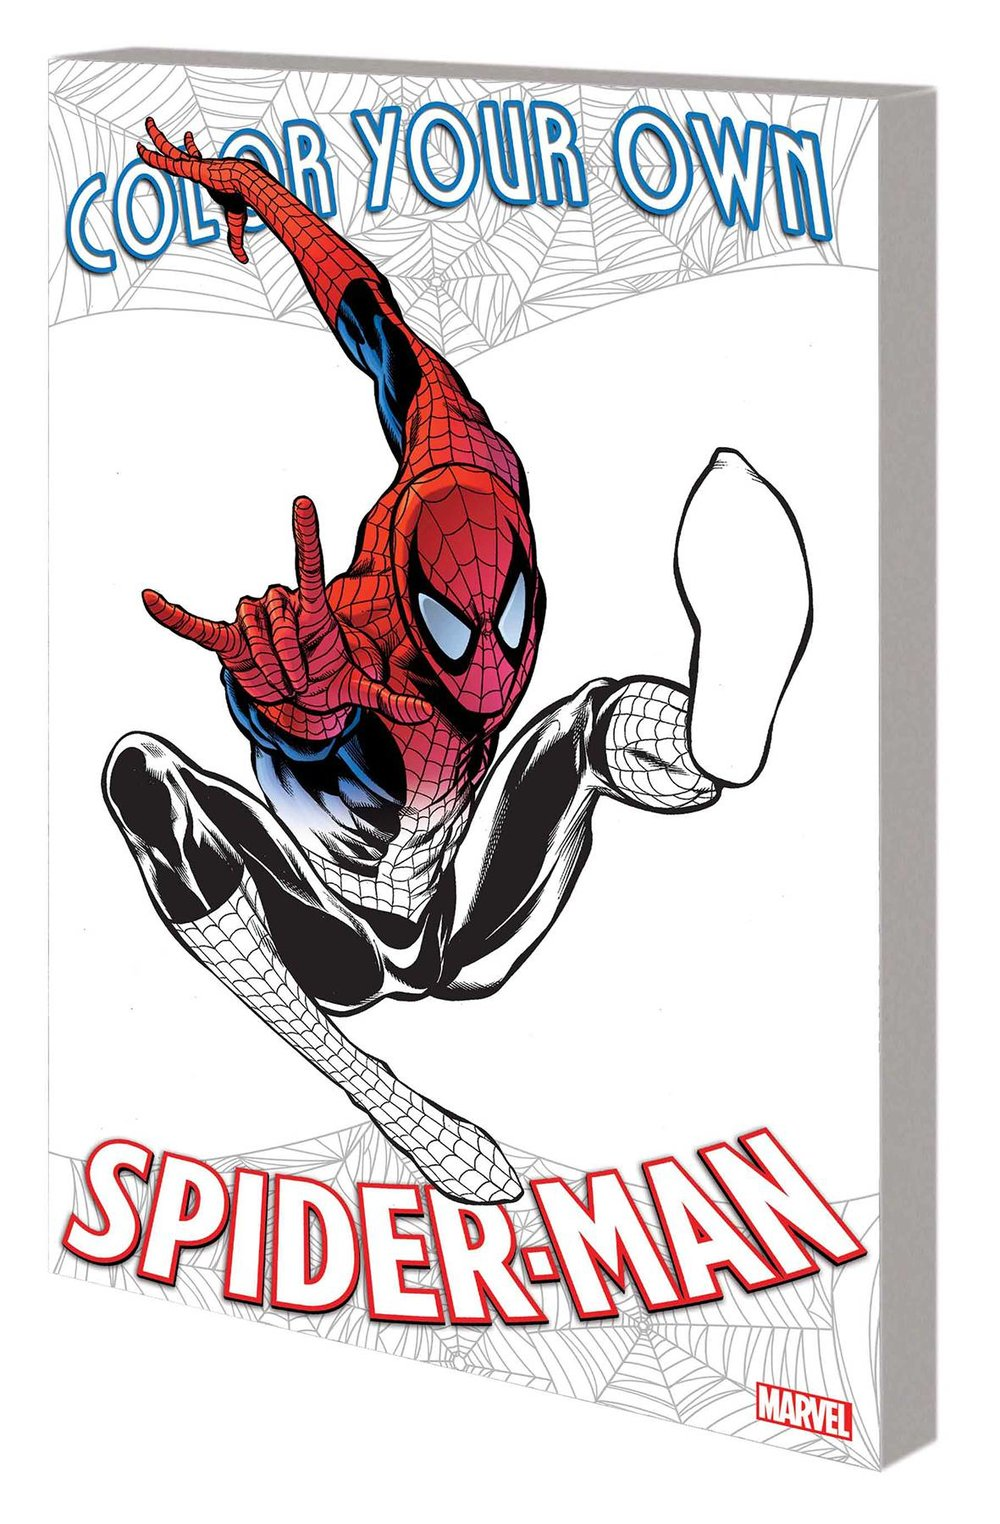 COLOR YOUR OWN SPIDER-MAN TP.jpg